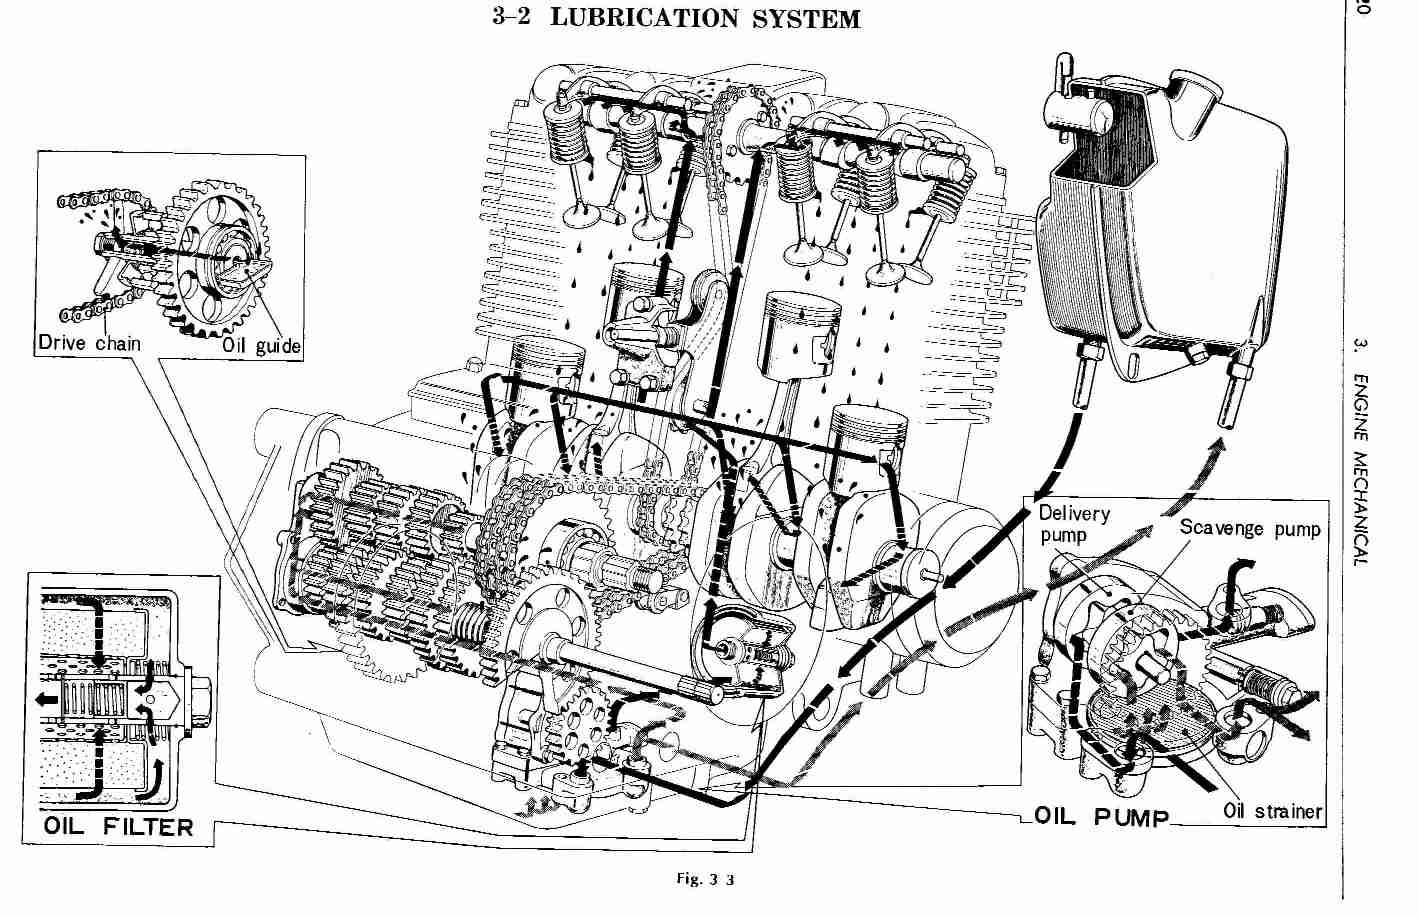 1980 Honda Cb750 Wiring Diagram Schematic Diagrams Yamaha Xs1100 Ignition Furthermore Moreover